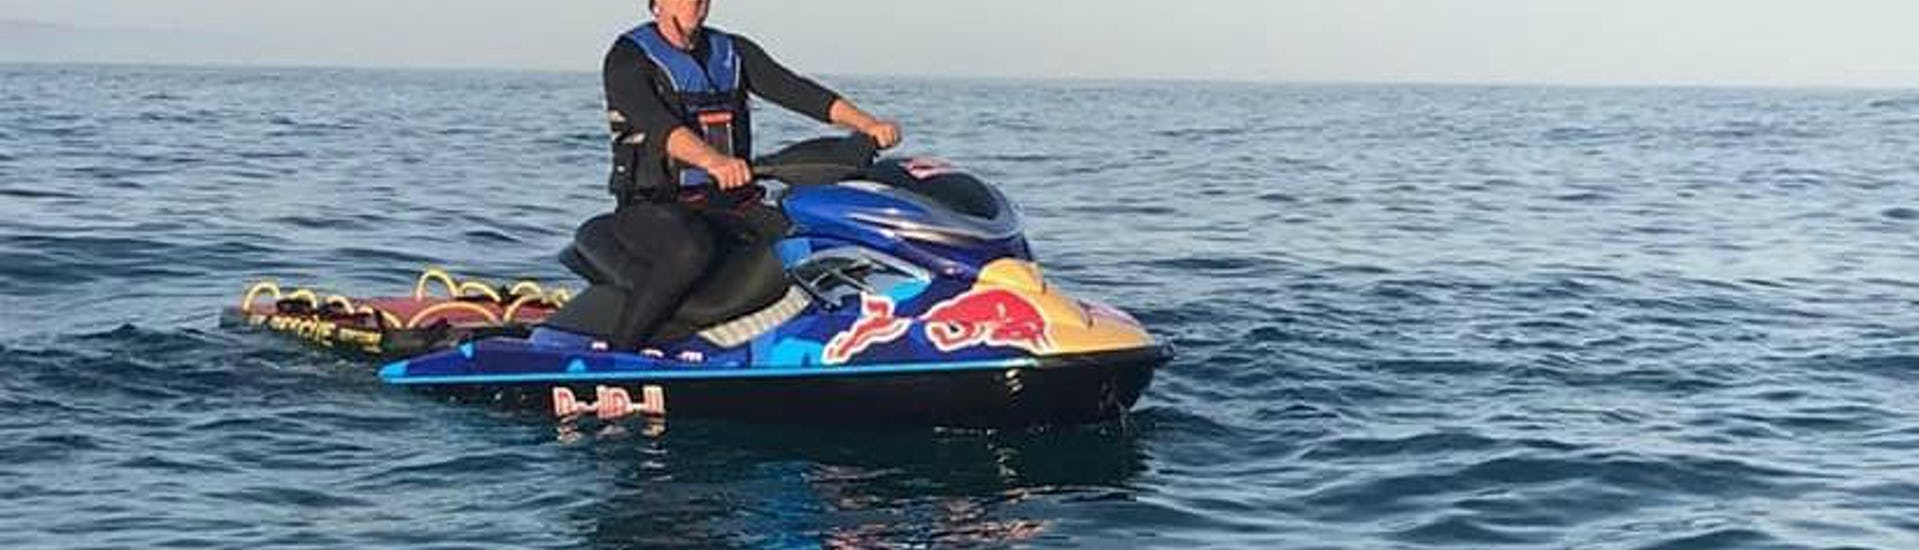 Jet Ski Hire in Plettenberg Bay